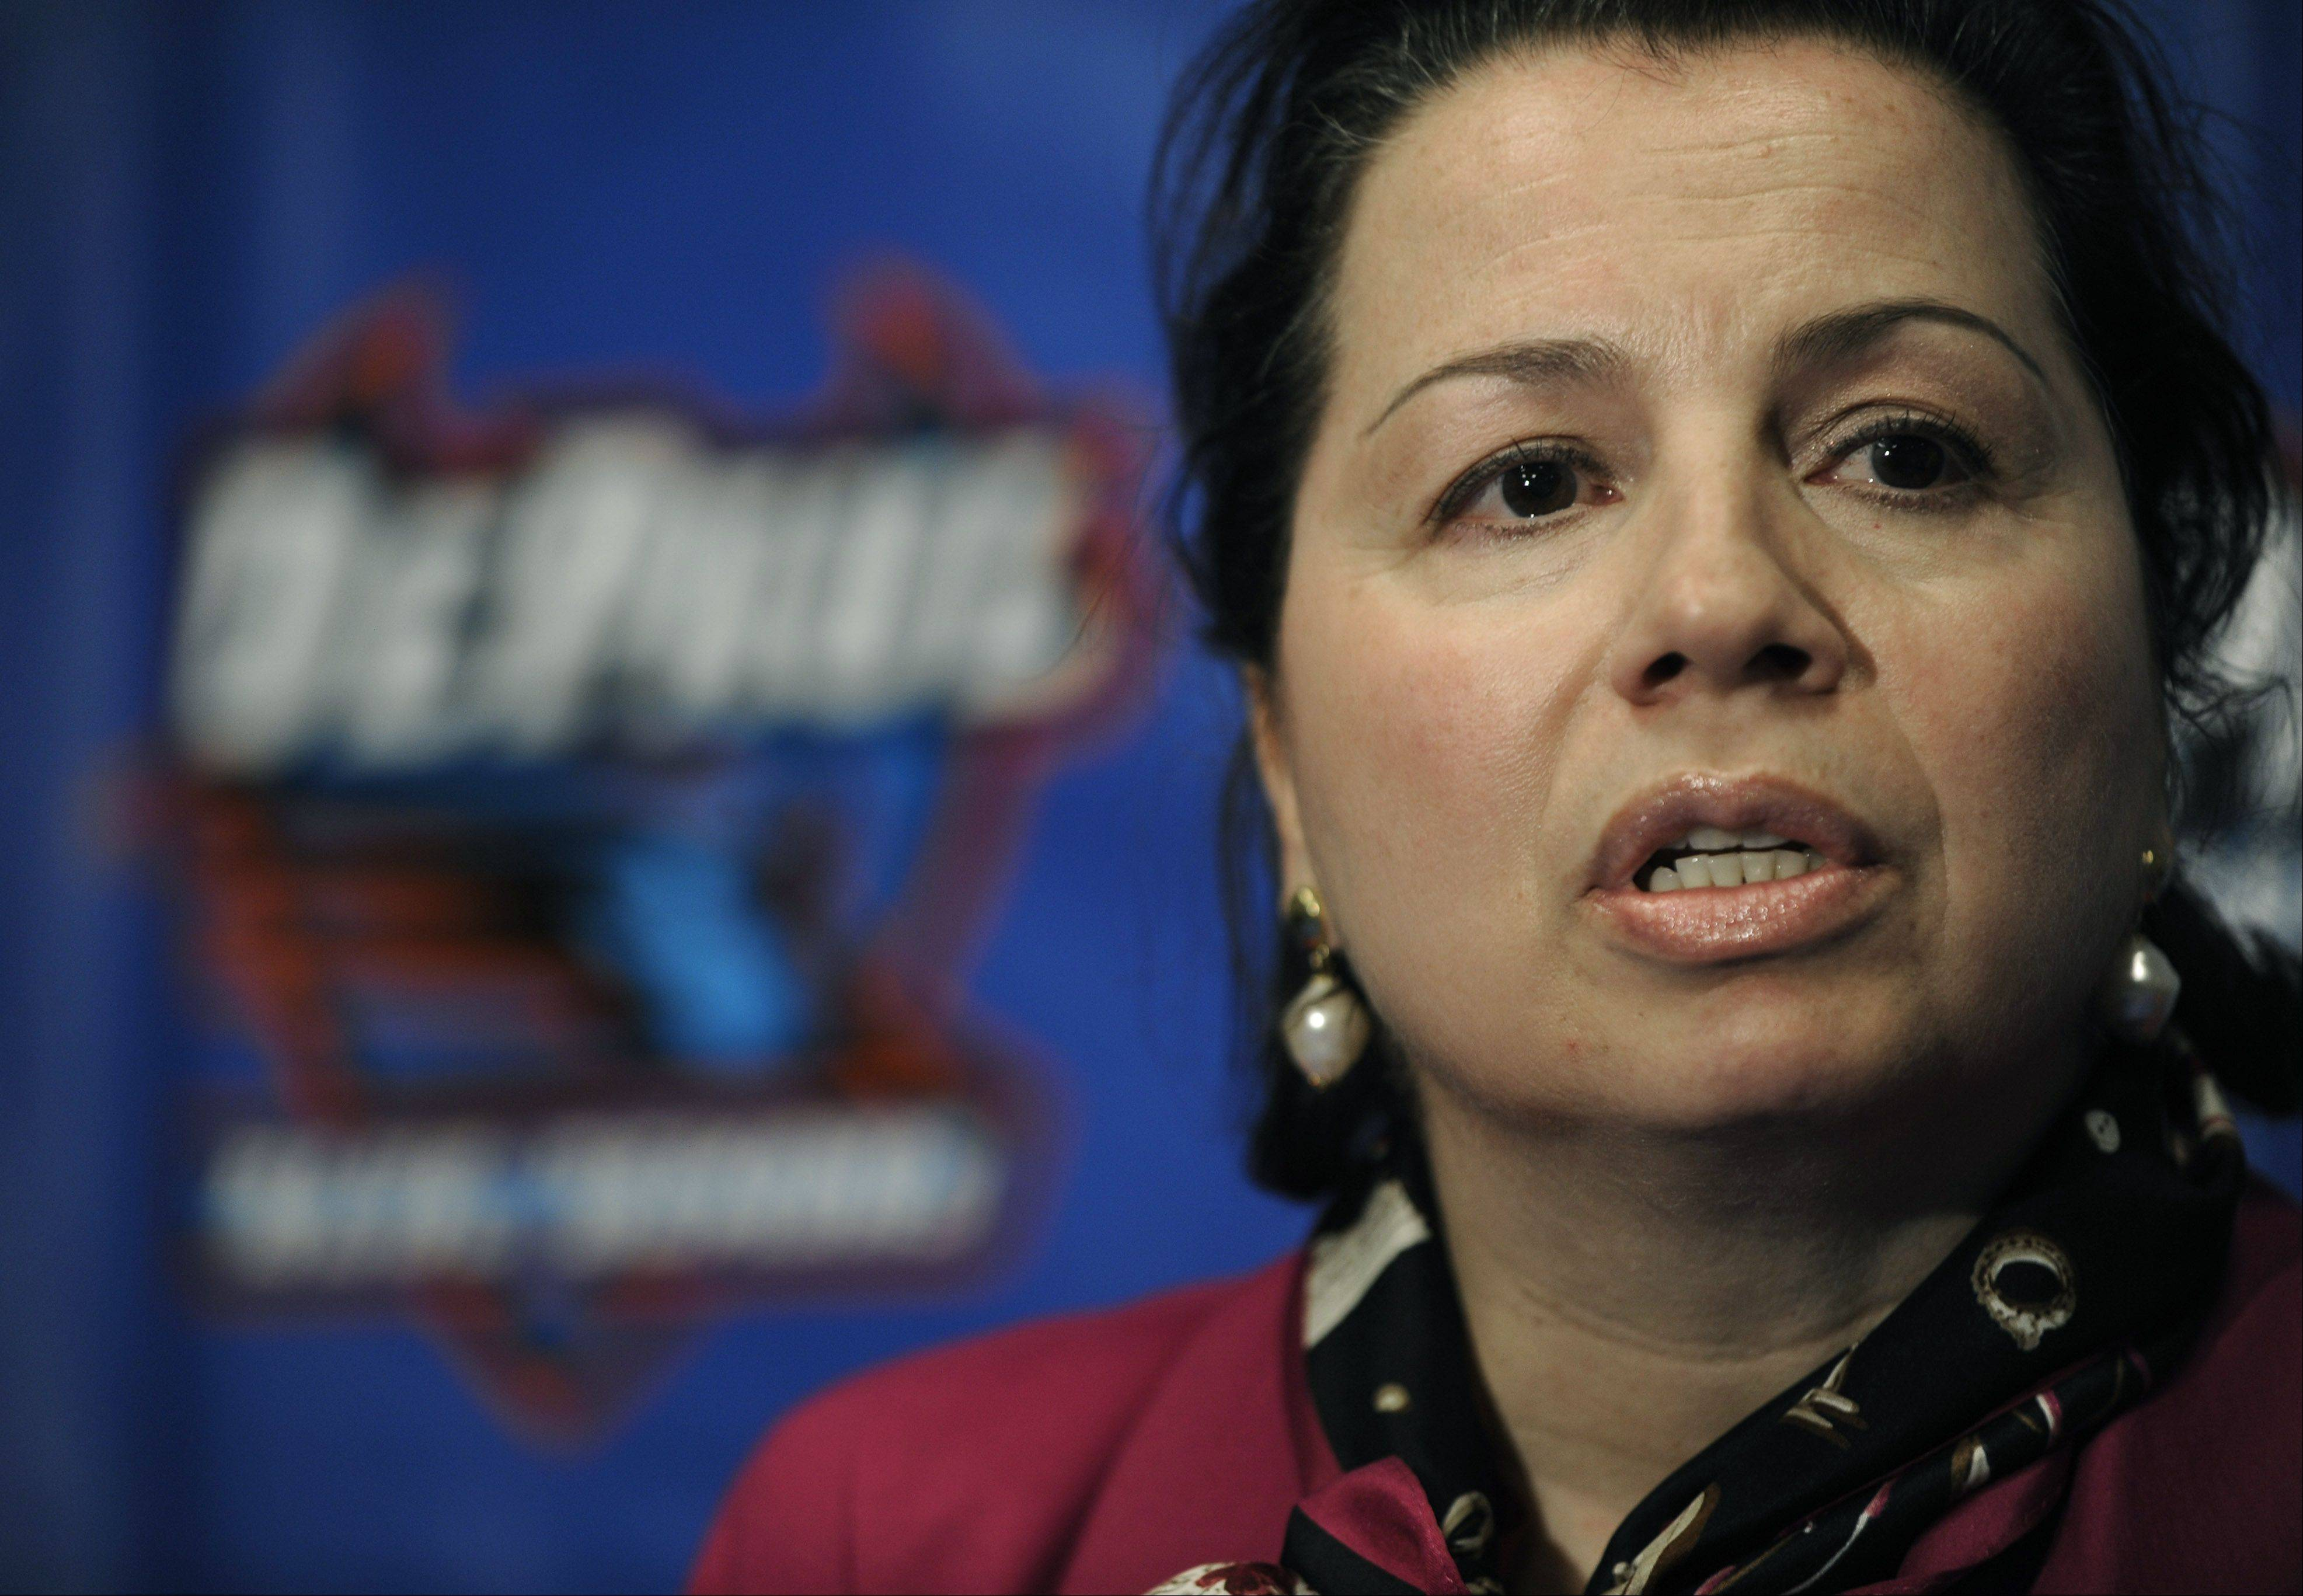 DePaul athletics director Jean Lenti Ponsetto has signed a five-year contract extension that will keep her with the university through 2017, school officials announced Tuesday.